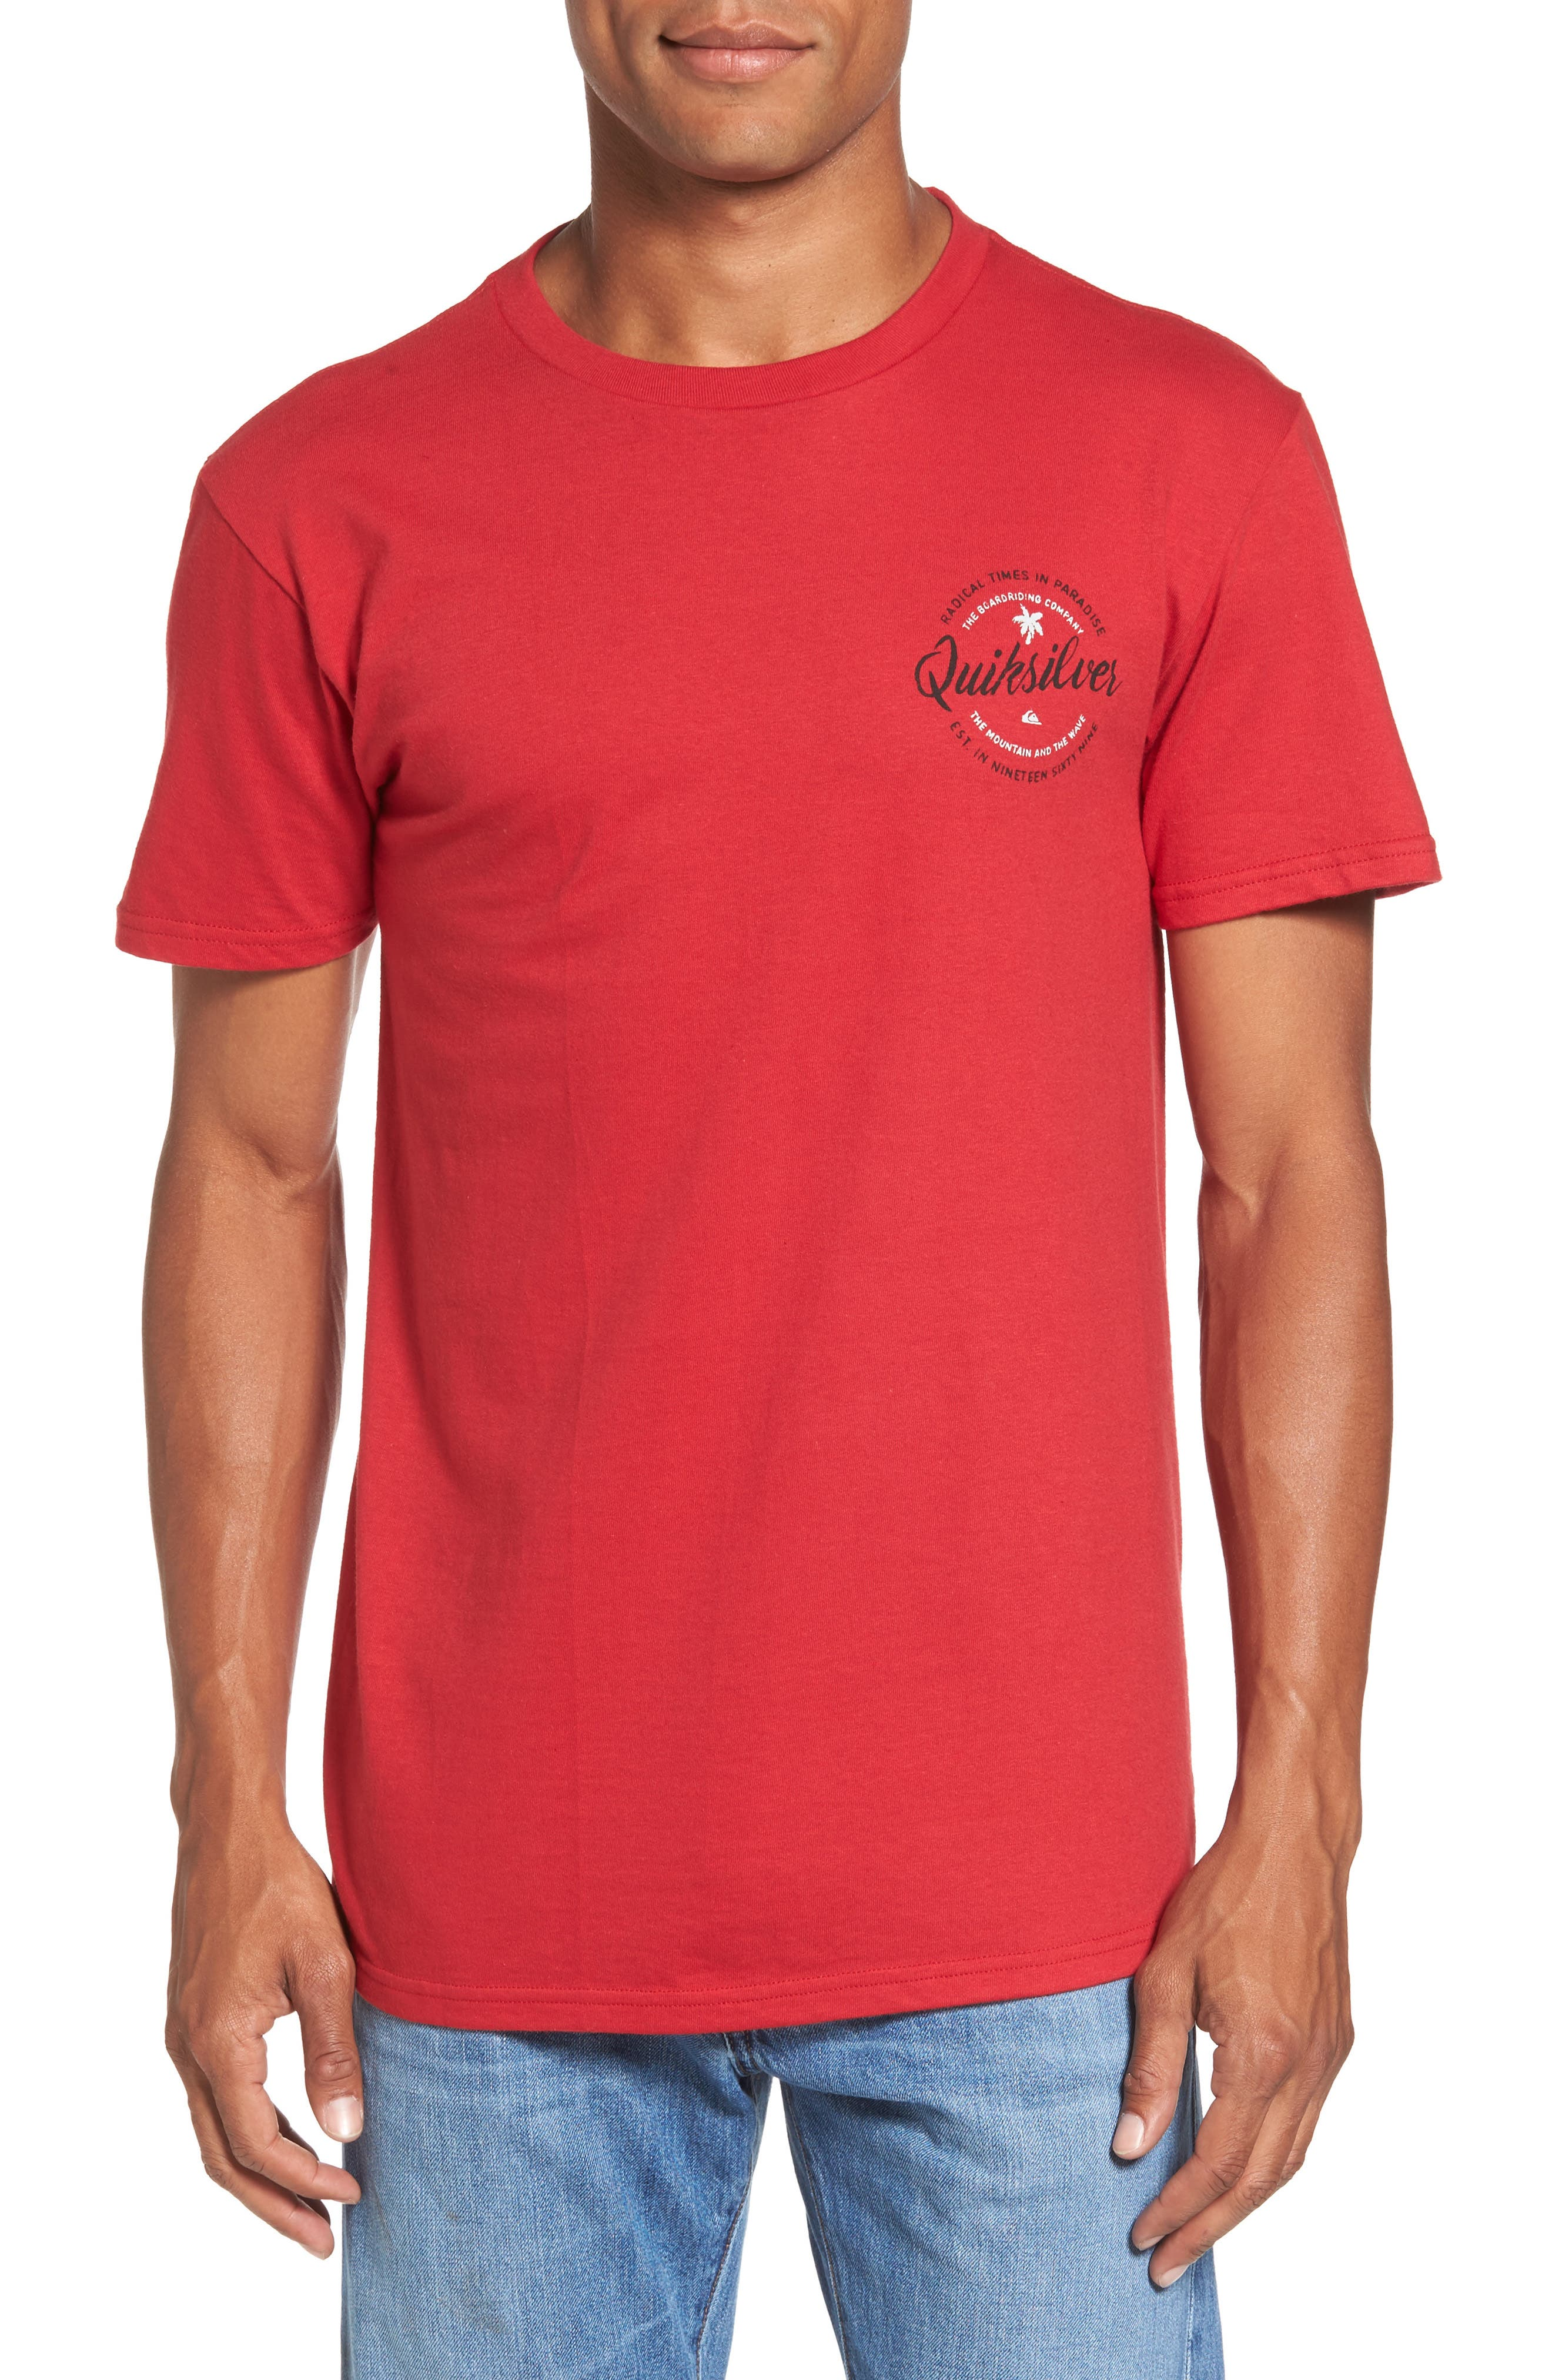 Main Image - Quiksilver Holding Dreams MT0 T-Shirt